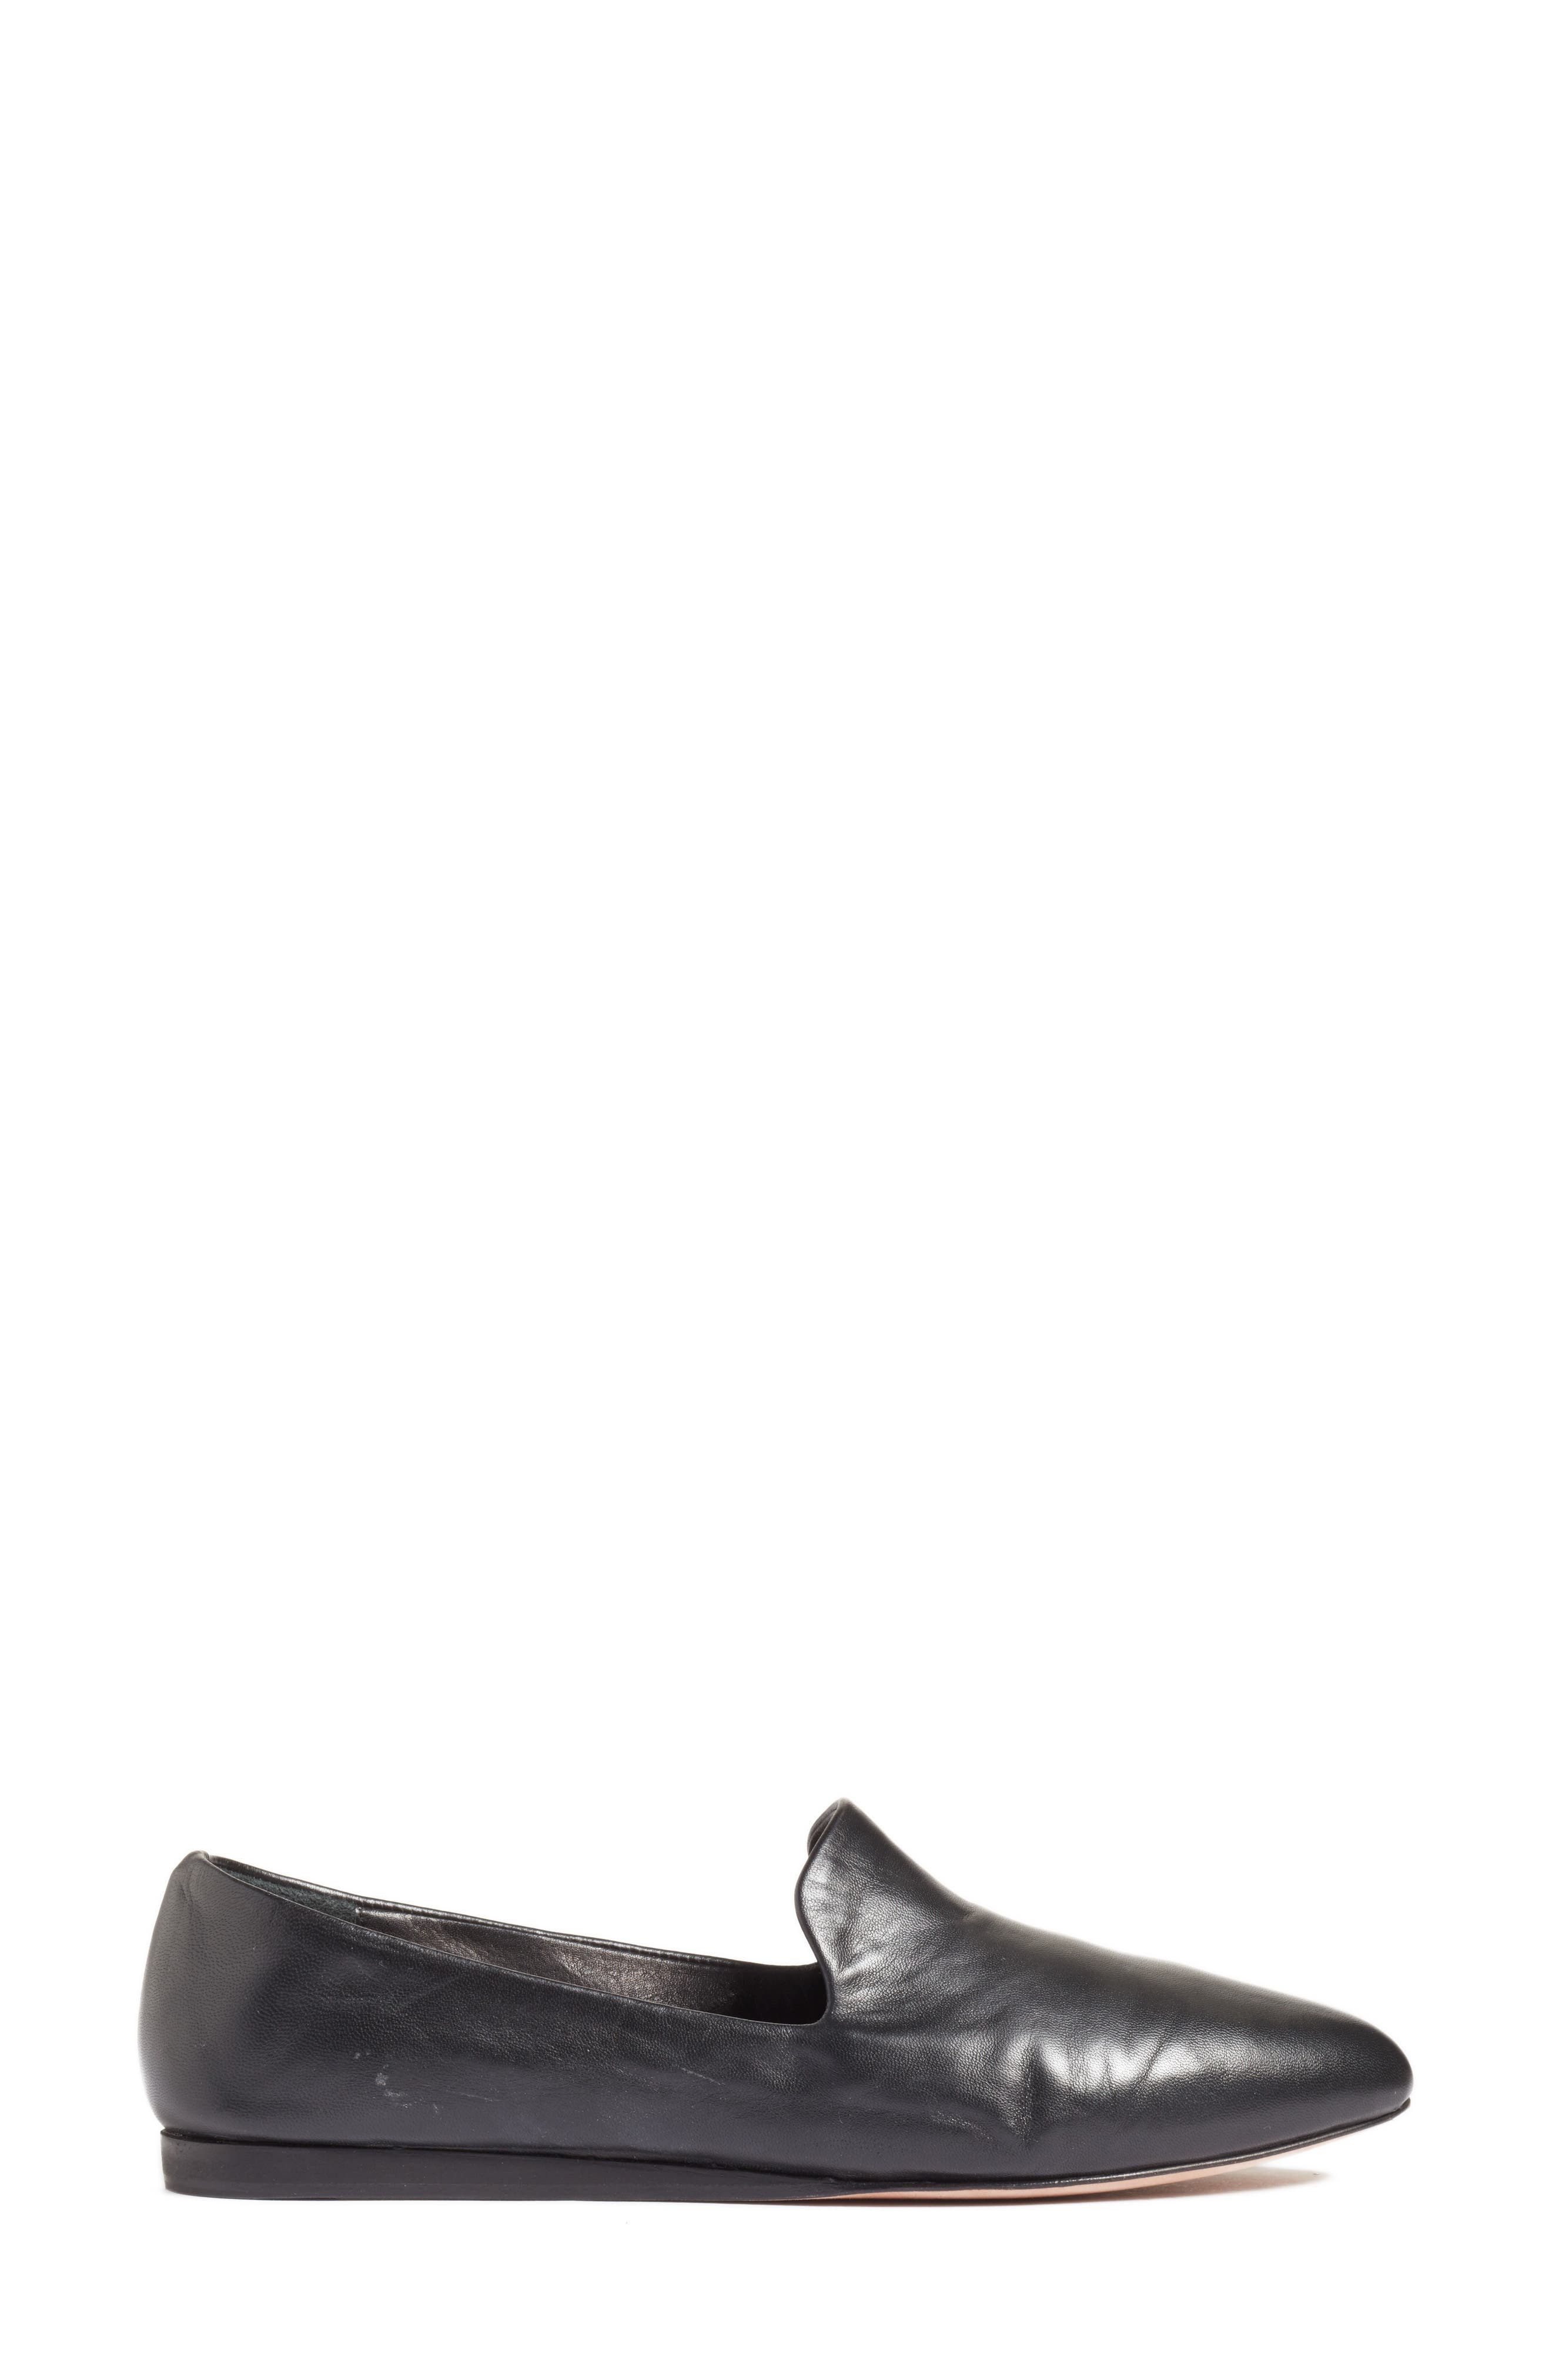 VERONICA BEARD,                             Griffin Pointy Toe Loafer,                             Alternate thumbnail 3, color,                             001